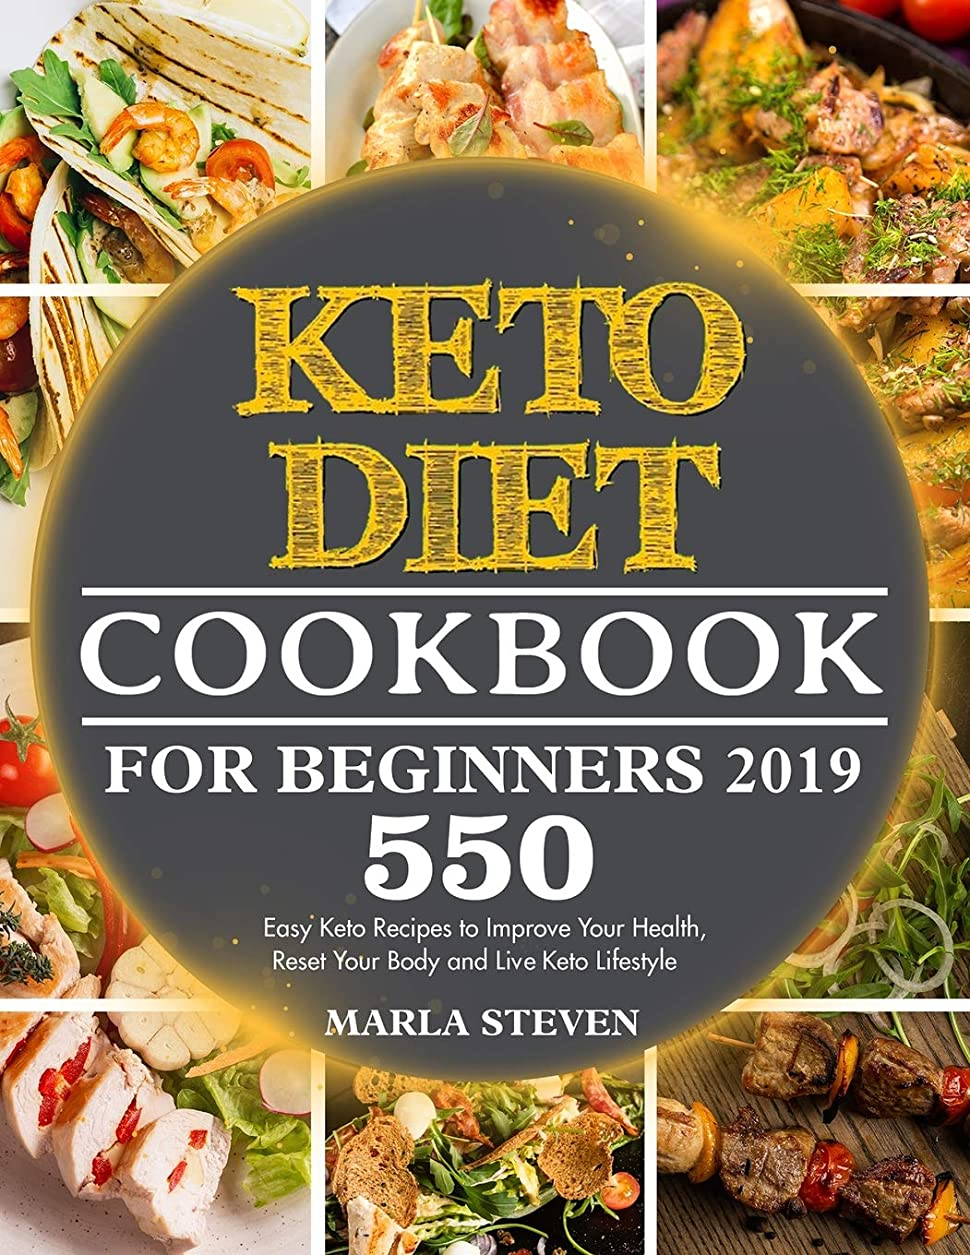 隣接入植者包括的KETO DIET COOKBOOK FOR BEGINNERS 2019: 550 Easy Keto Recipes to Improve Your Health, Reset Your Body and Live Keto Lifestyle